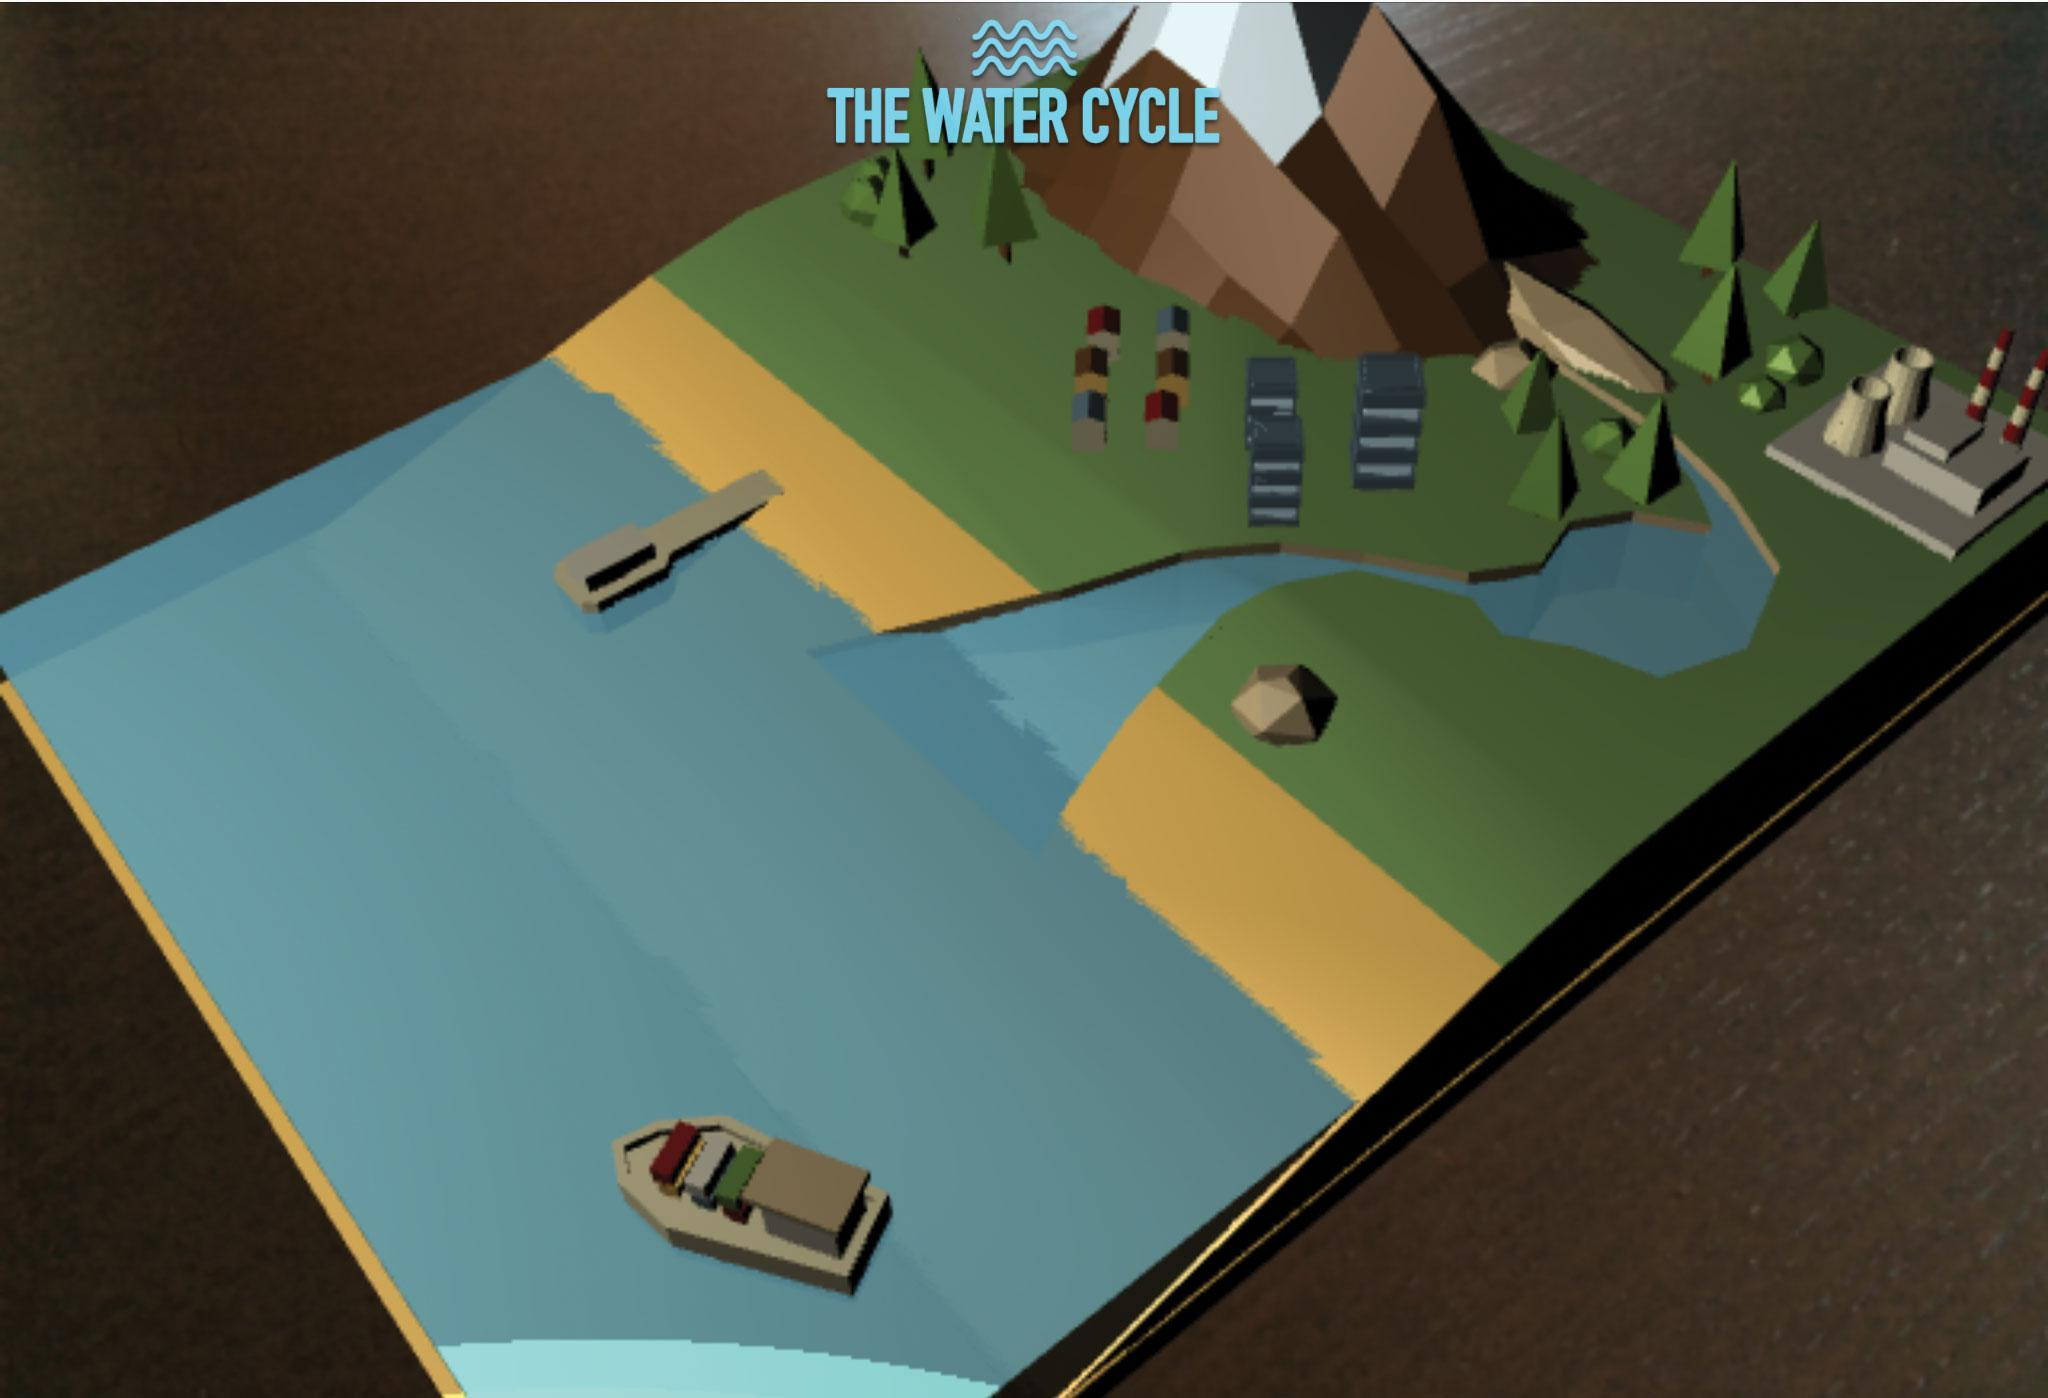 the water cycle model